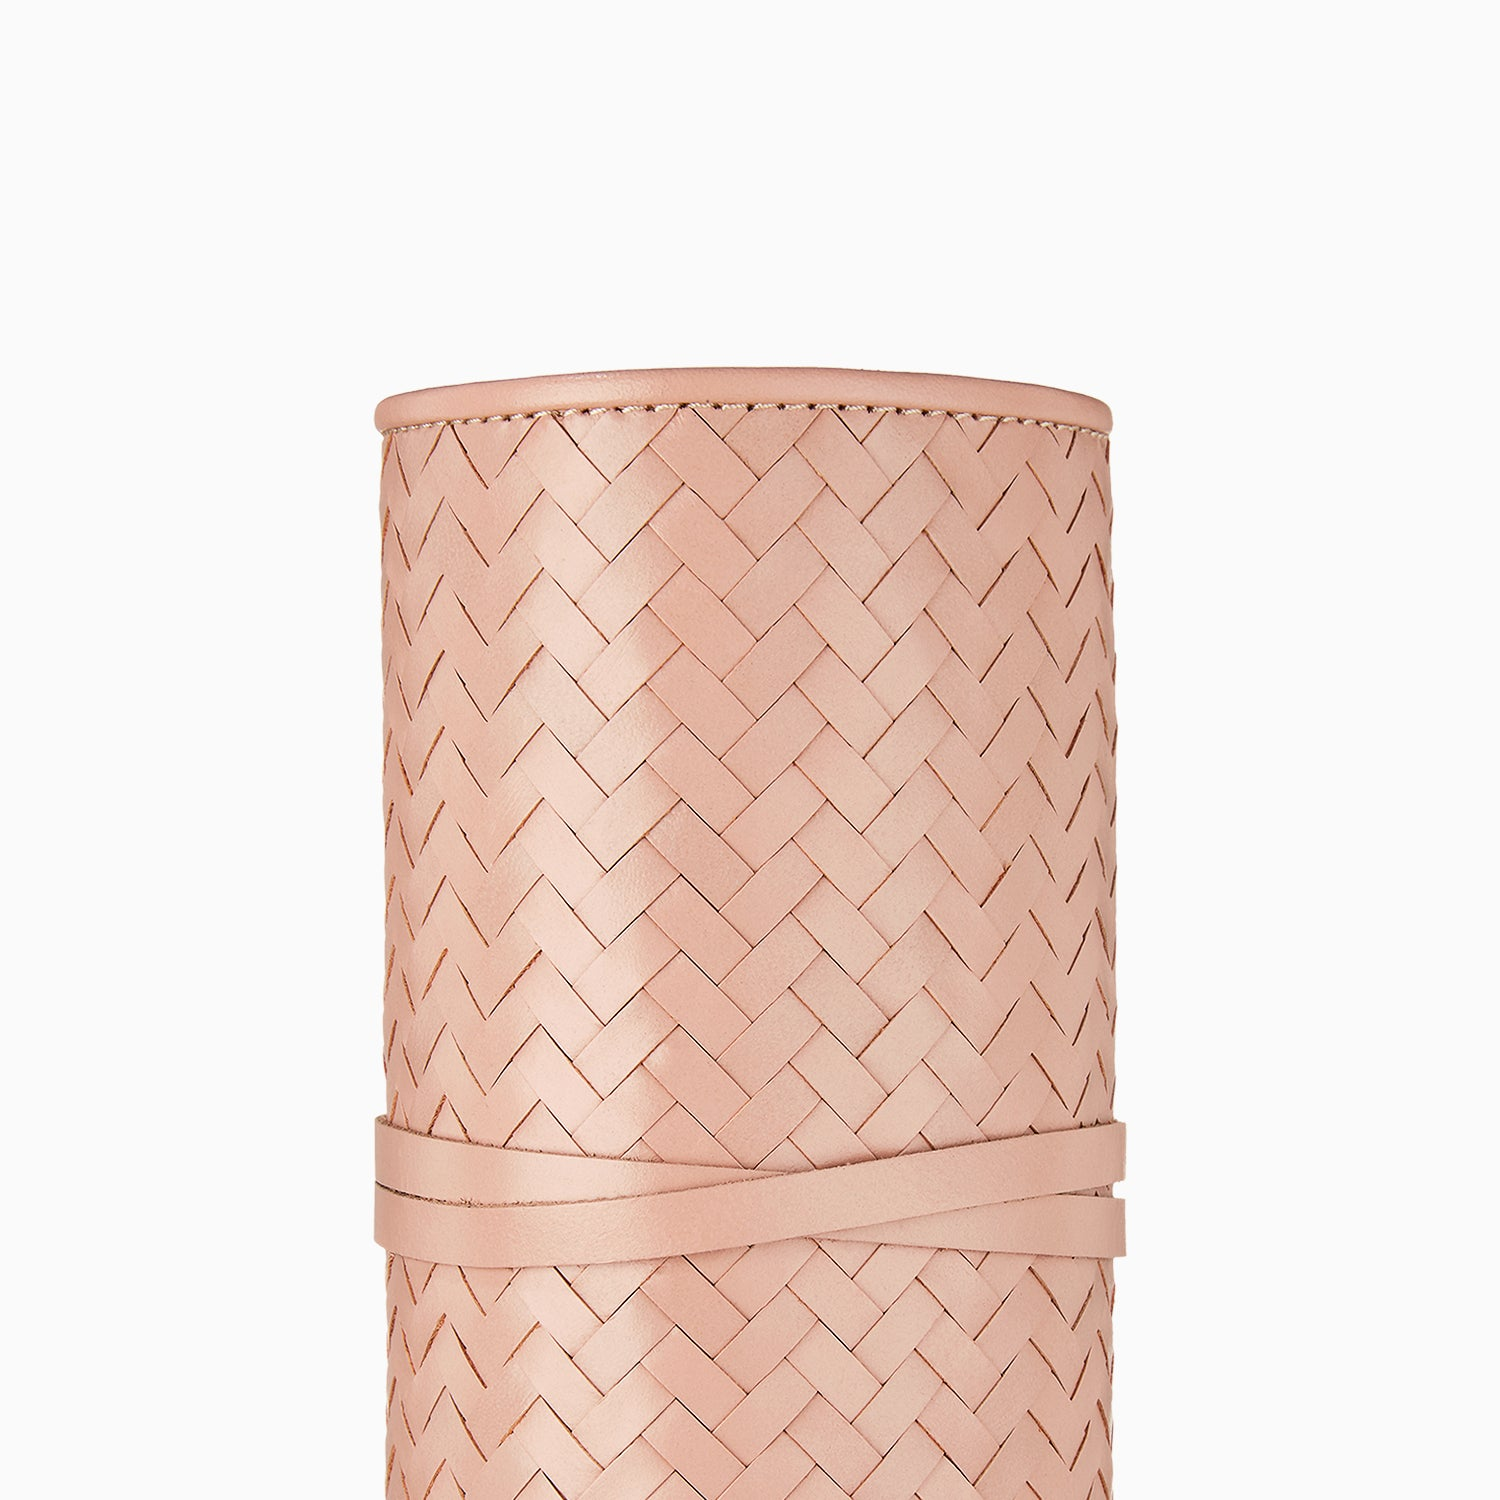 Herringbone Grooming Roll, Dusty Pink: Manicure Set